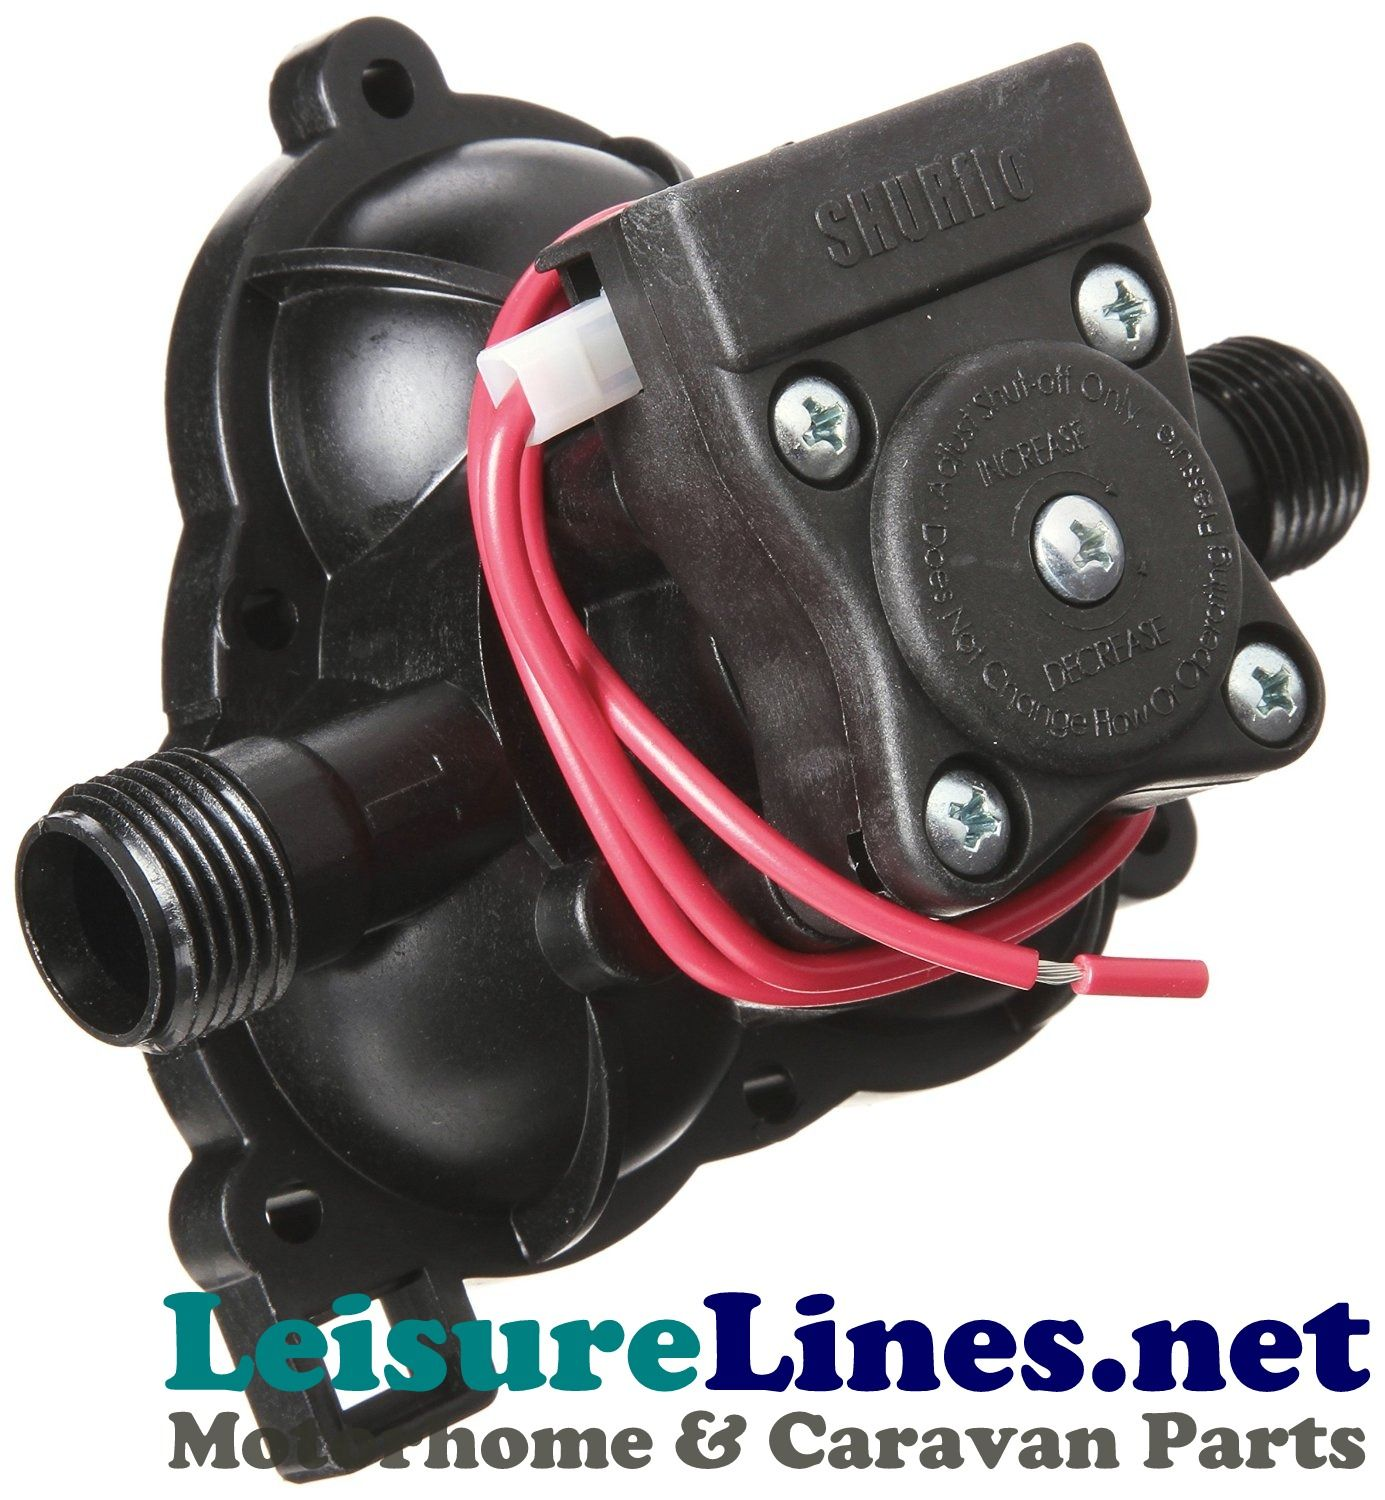 Trail king 10 spare upper housing 30psi pressure switch shurflo trail king 10 spare upper housing 30psi pressure switch pooptronica